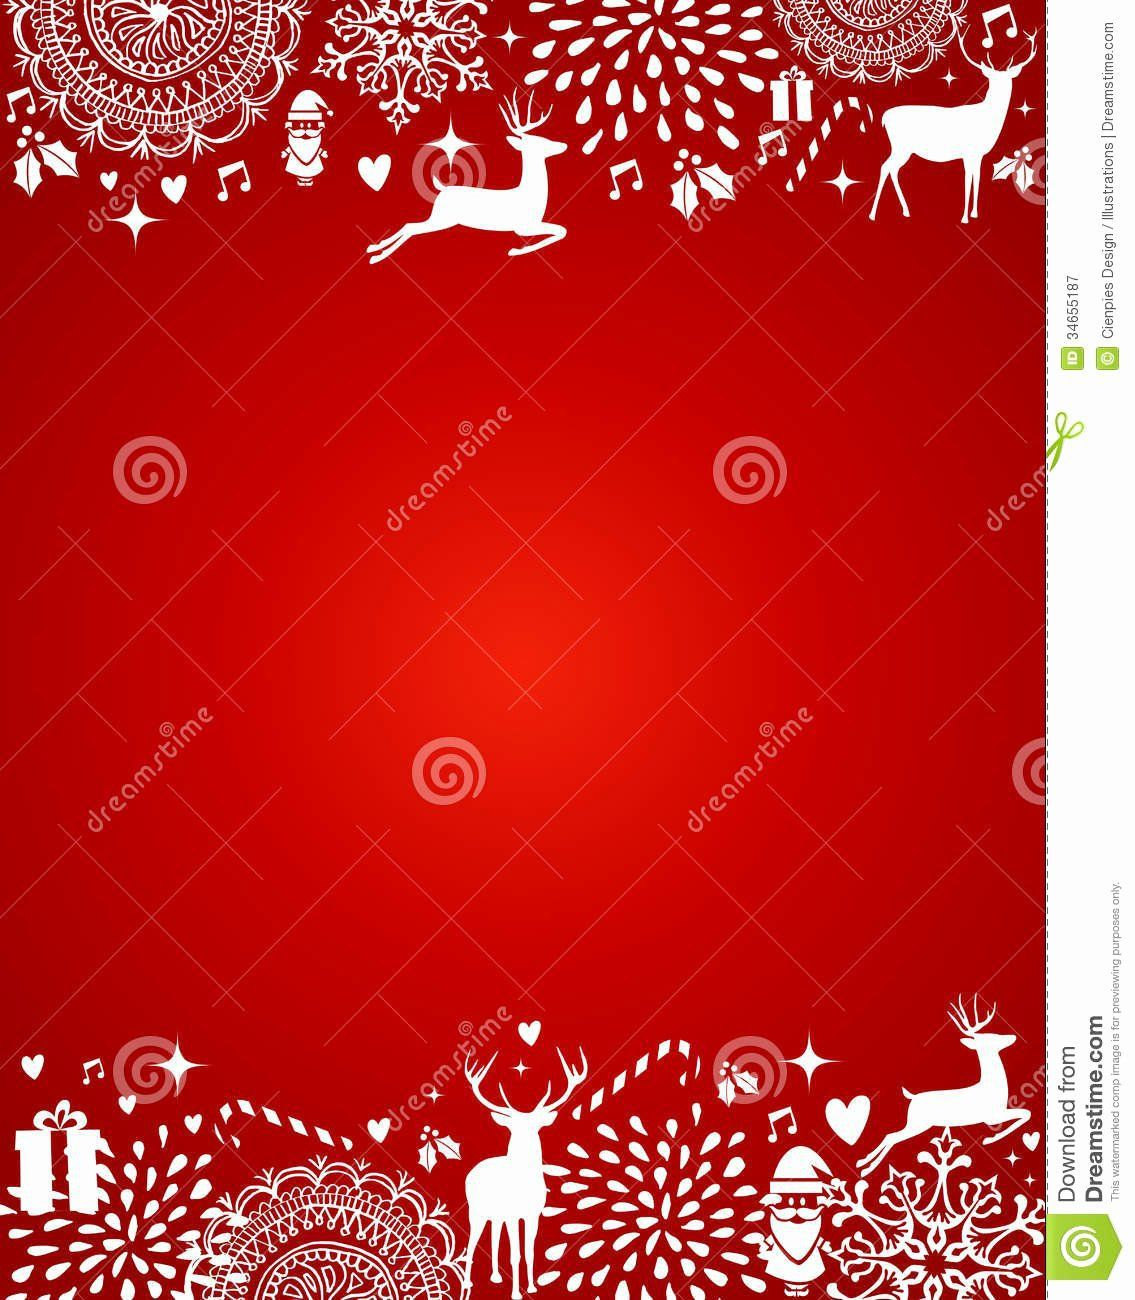 004 Fantastic Free Christma Template For Word Design  Holiday Party Invitation Recipe Card Printable StationeryFull